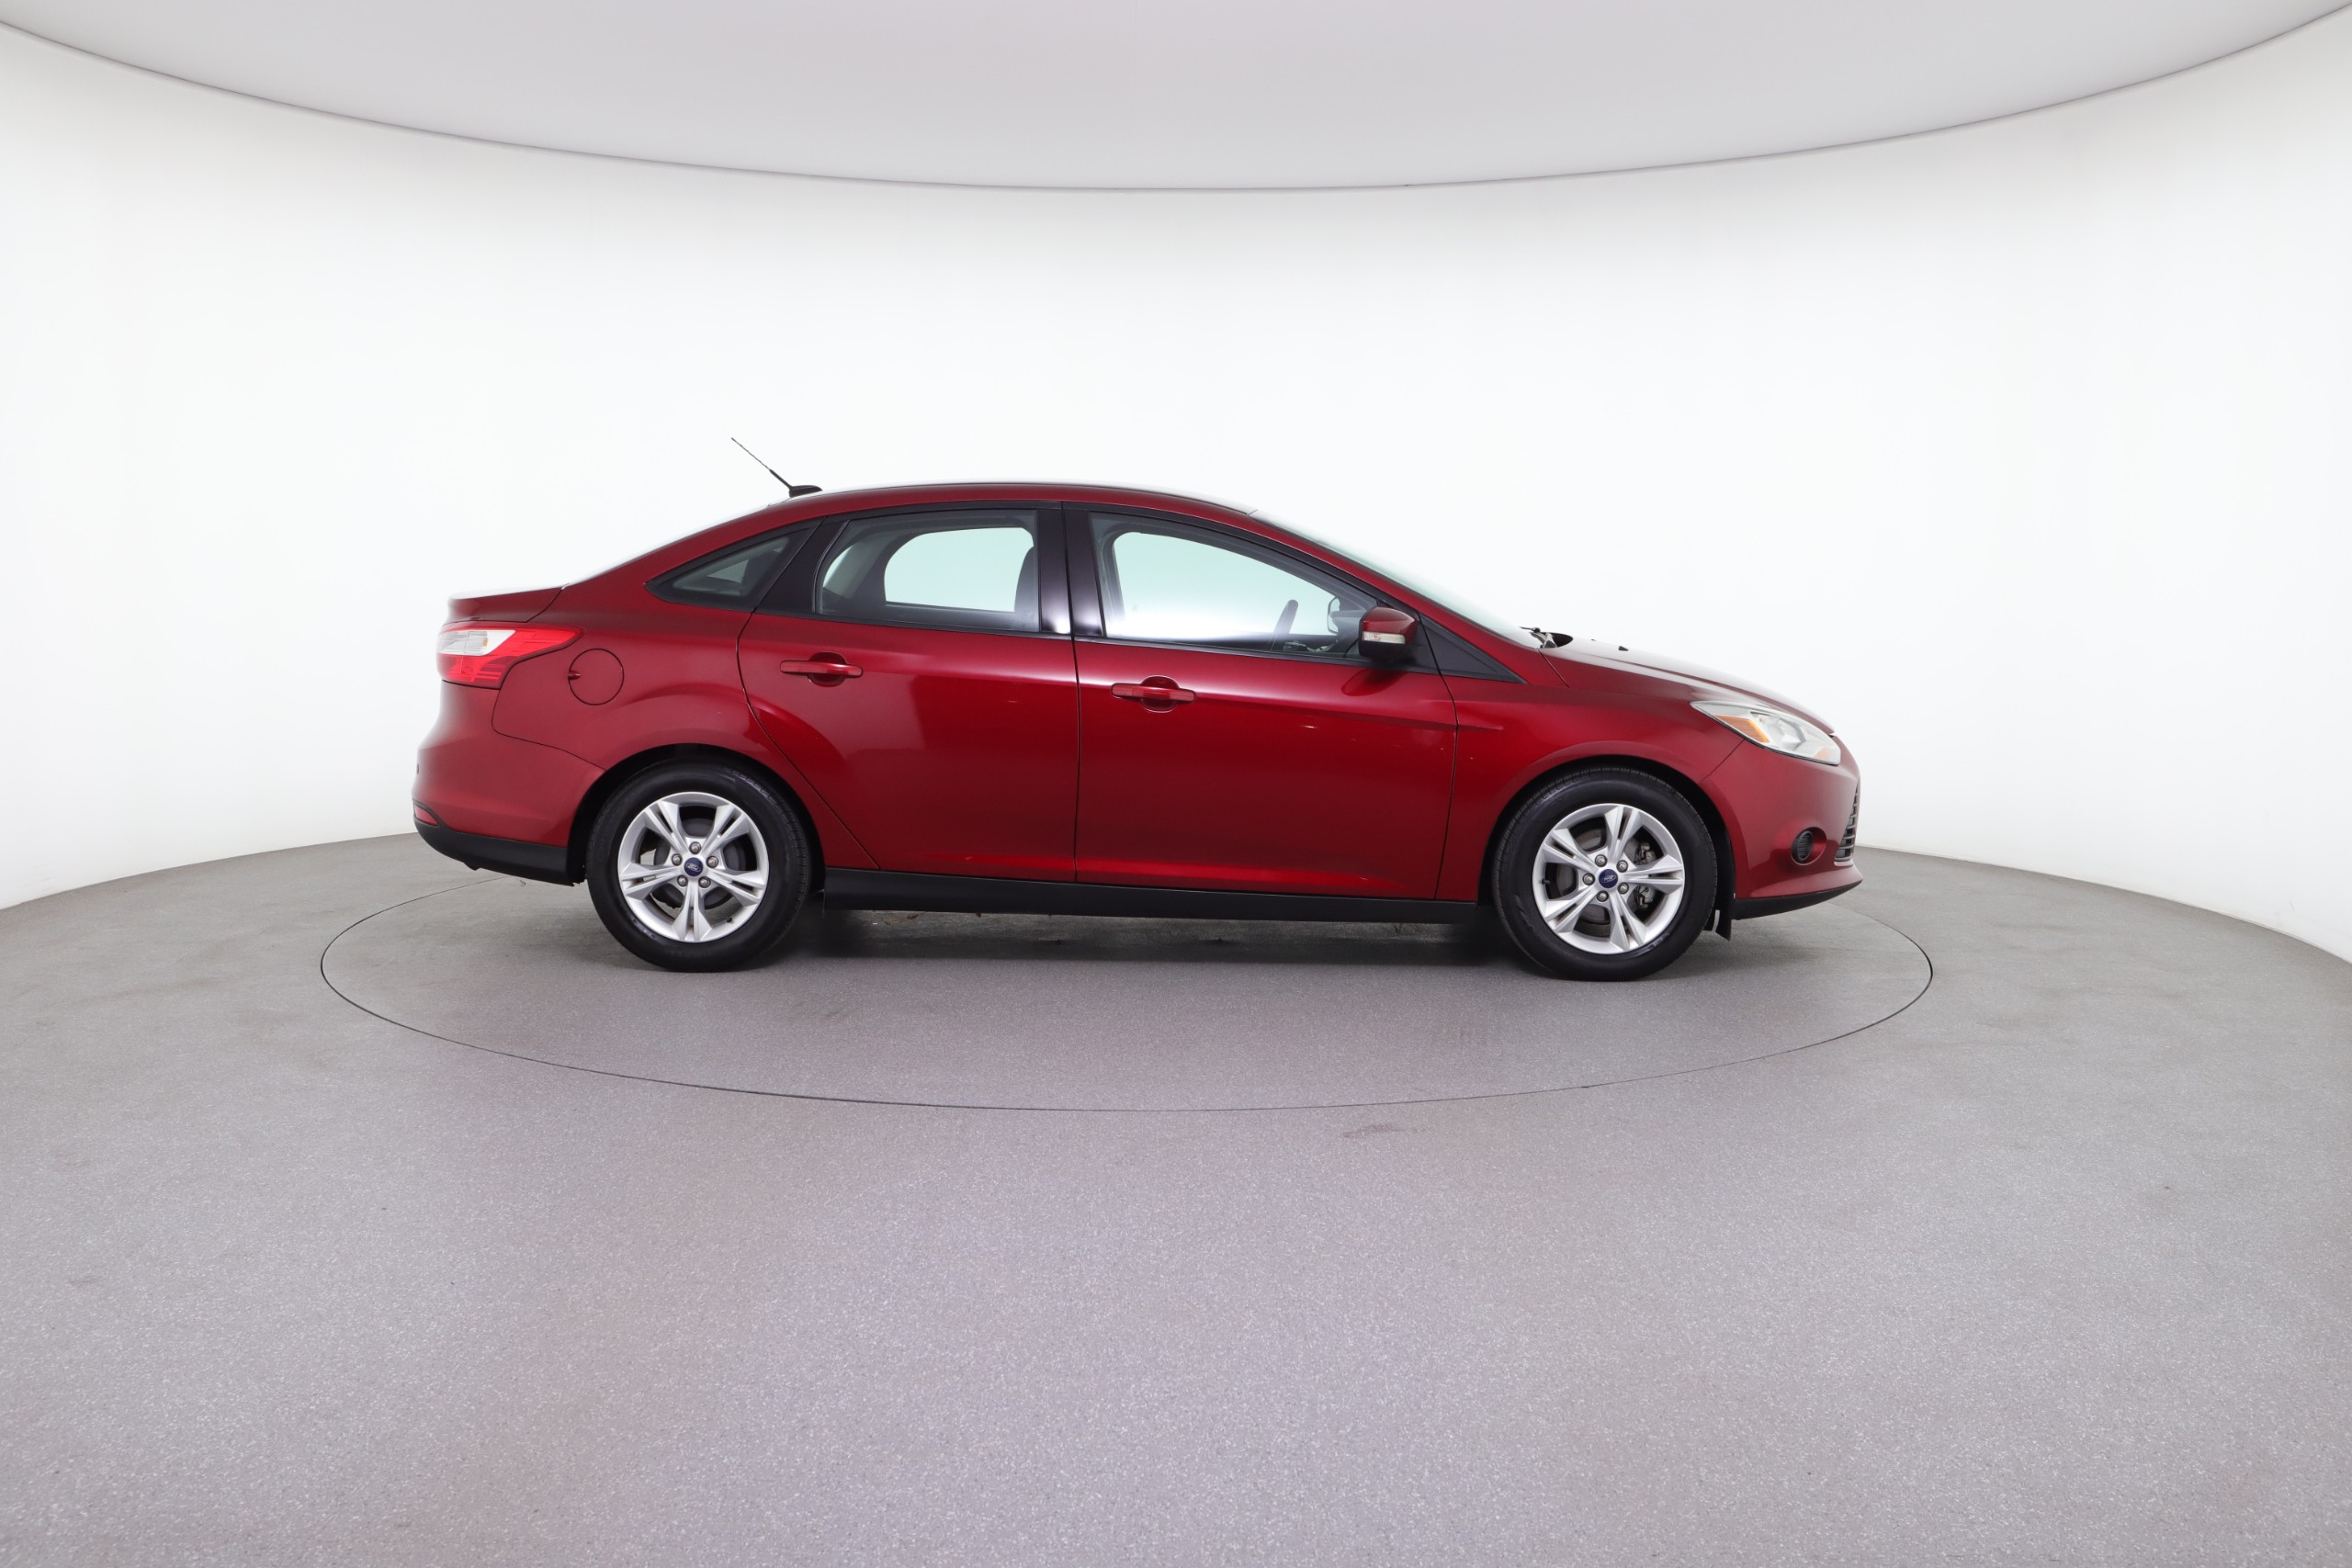 2014 Ford Focus SE (from $10,450)